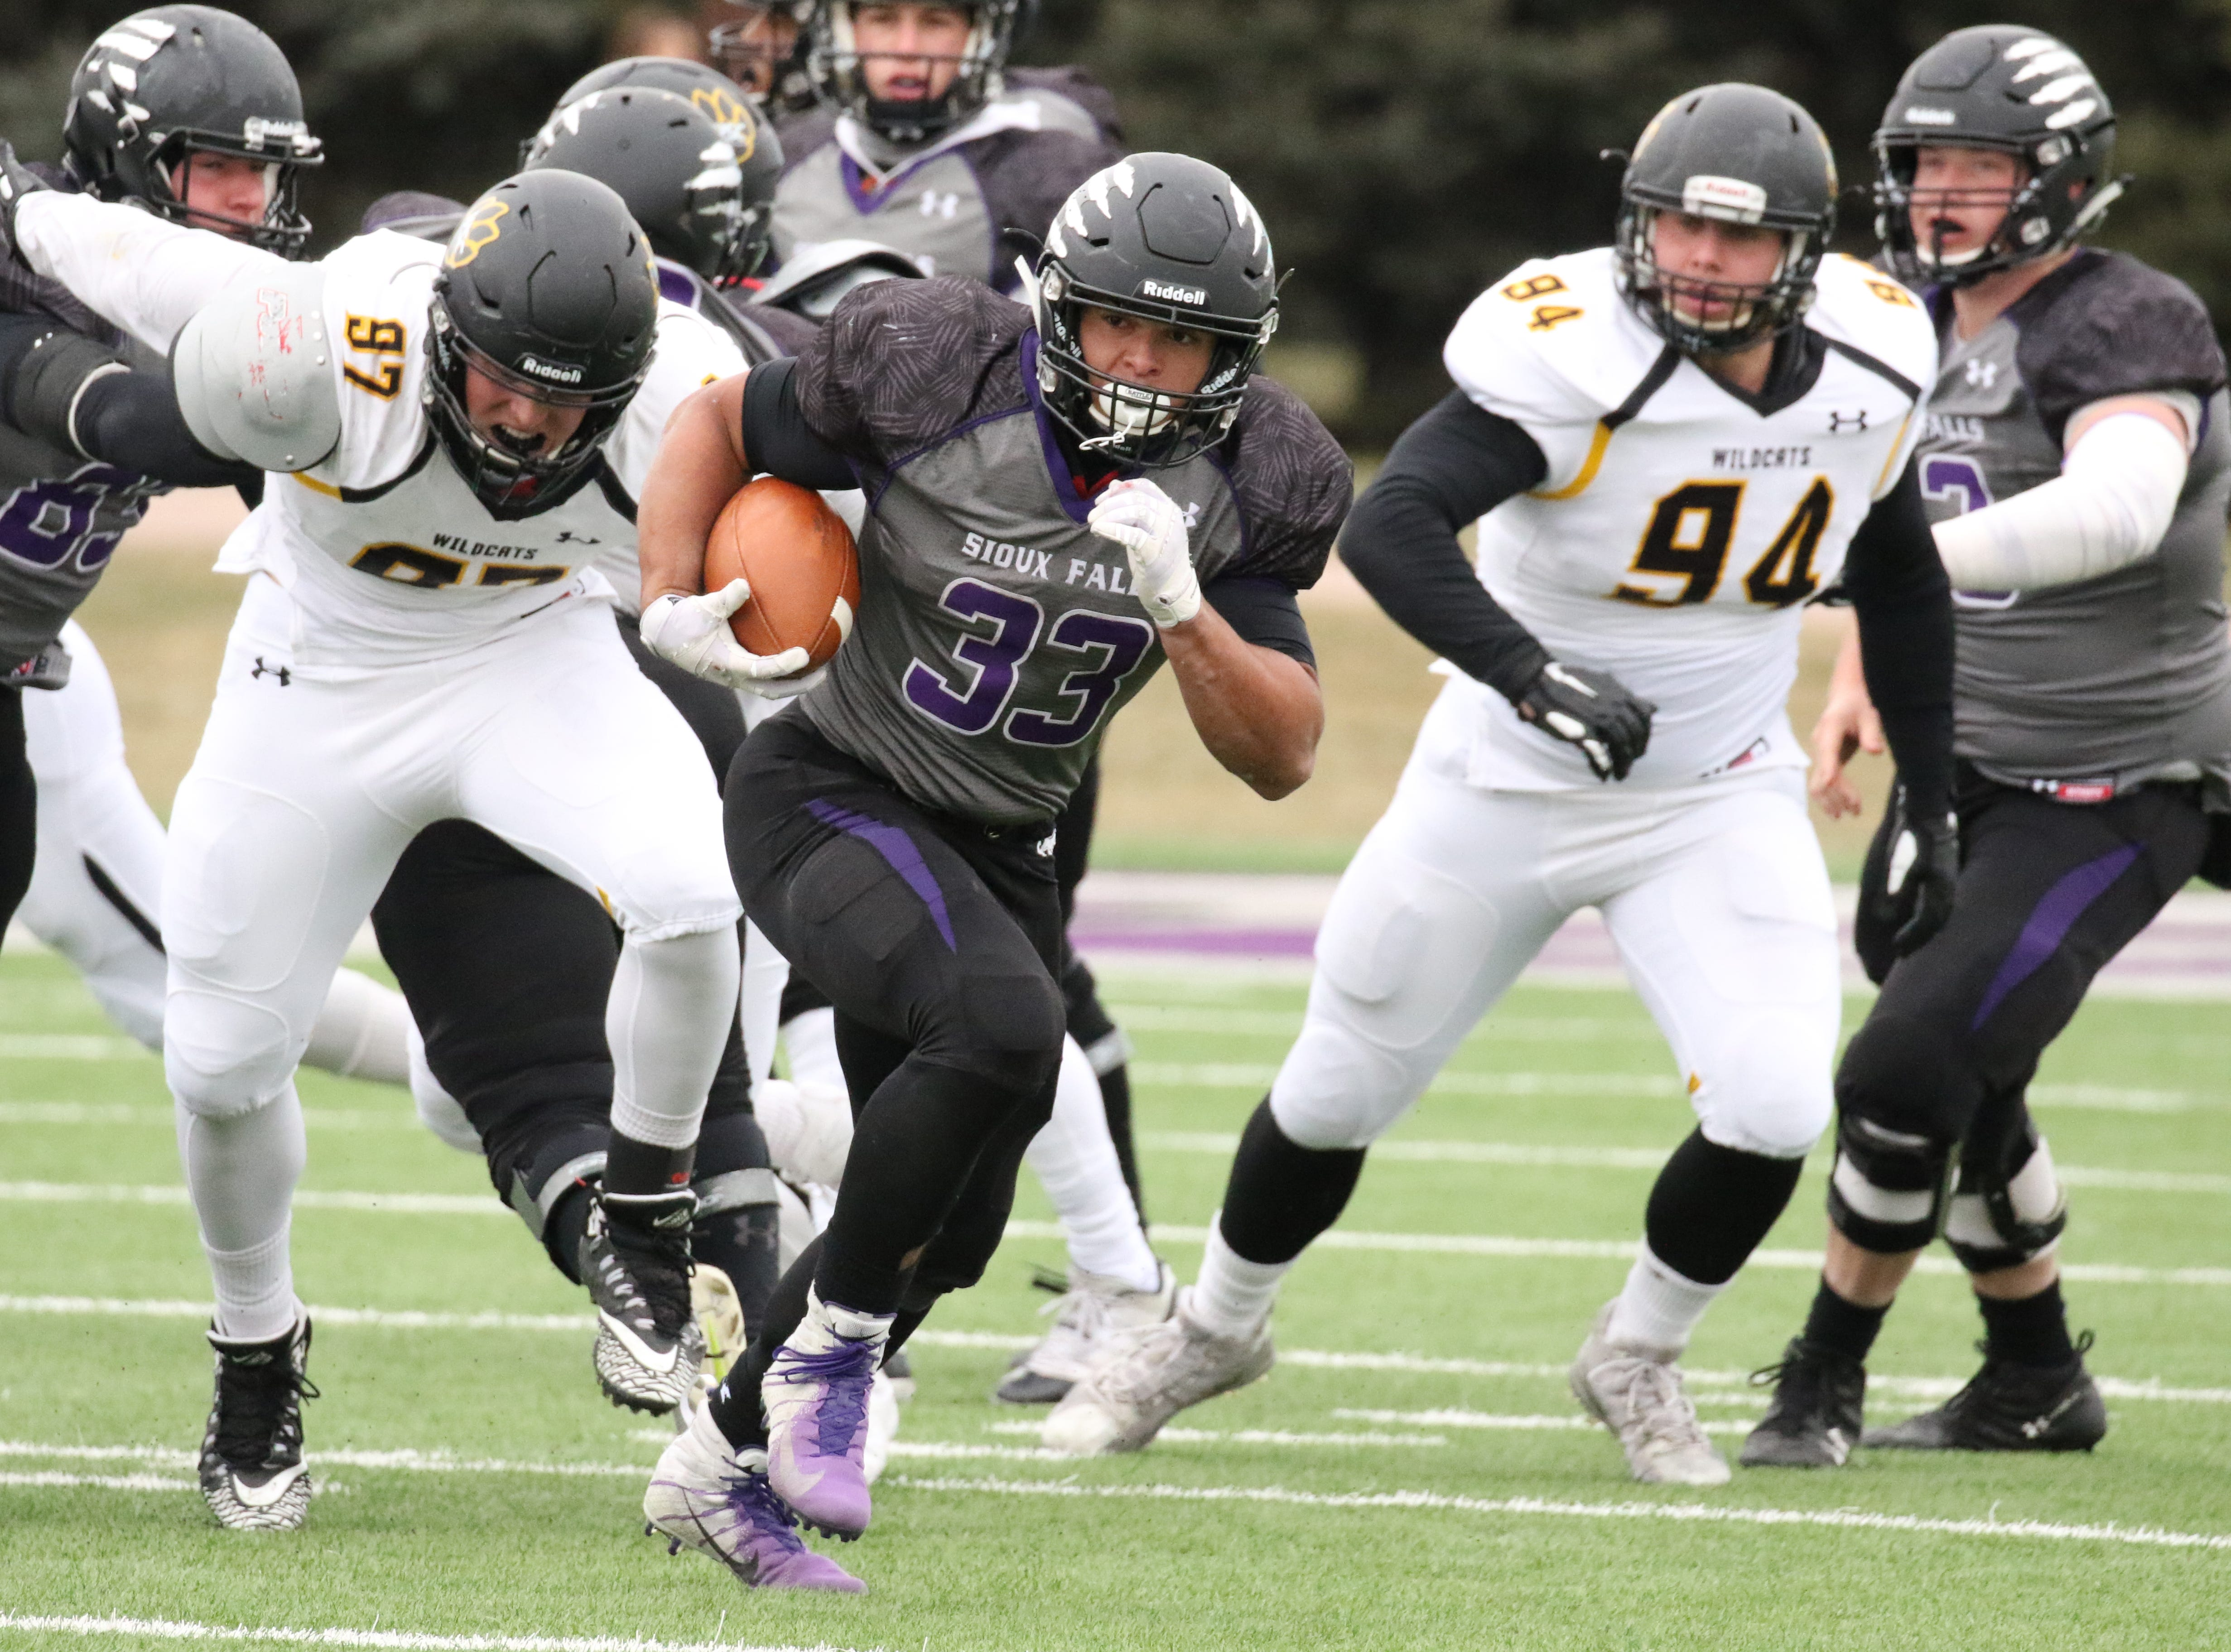 University of Sioux Falls RB, Gabriel Watson sprints into the open for a long gain during Saturday's game against Wayne State in Sioux Falls.